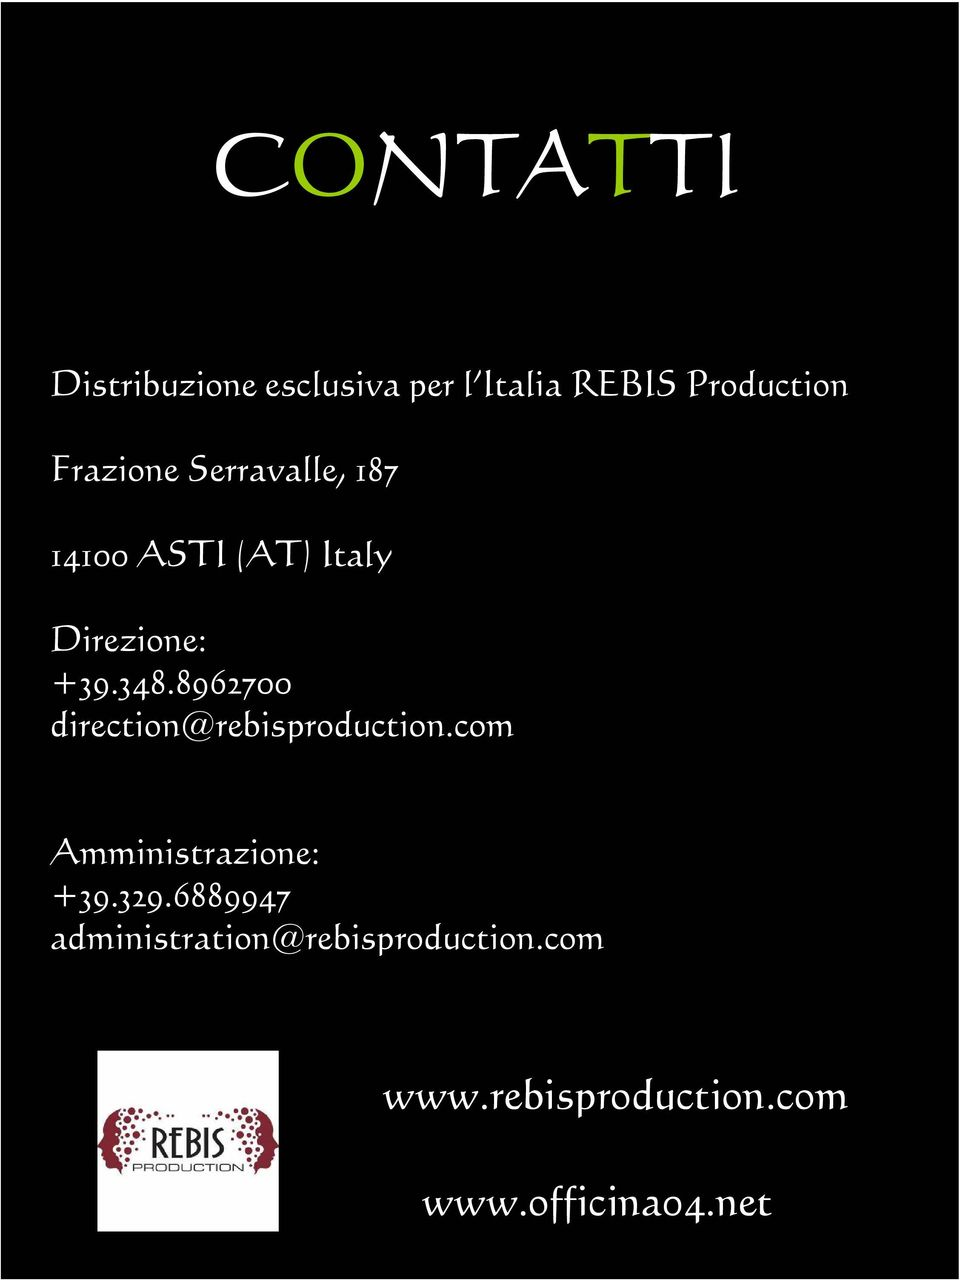 8962700 direction@rebisproduction.com Amministrazione: +39.329.